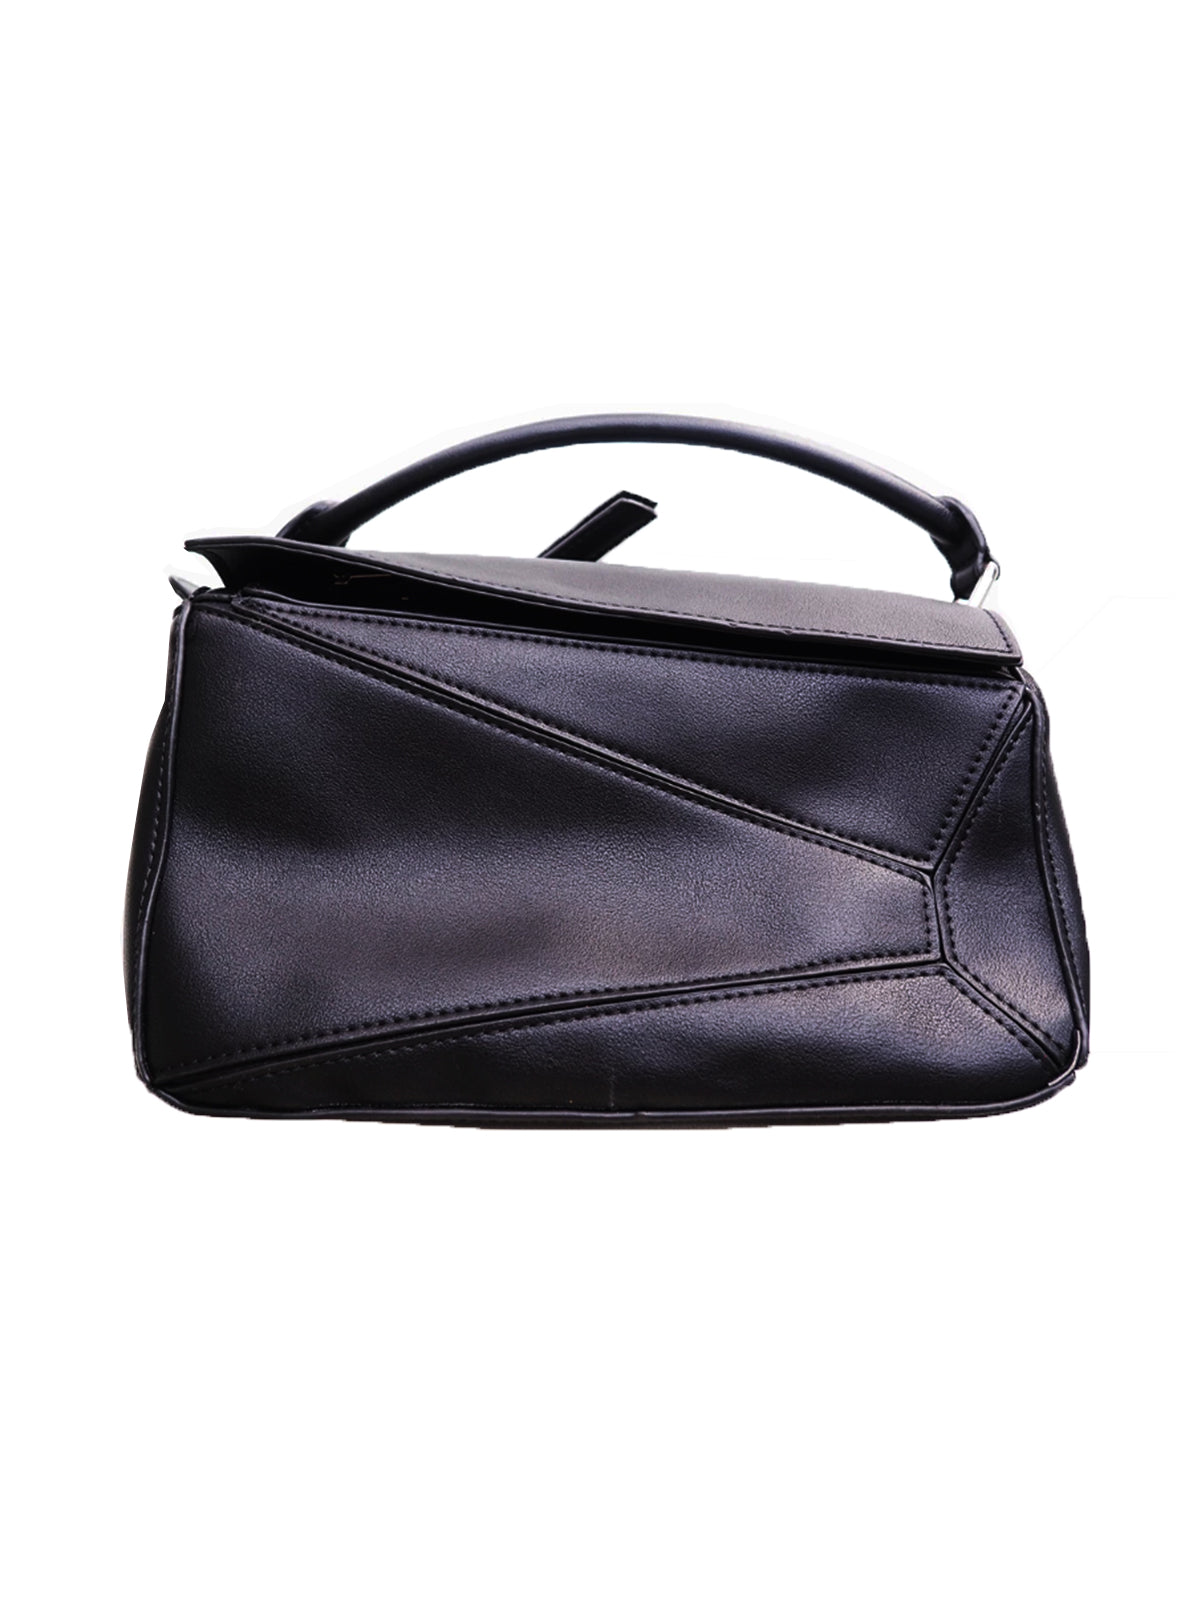 A NYC MOMENT BLACK SHOULDER BAG